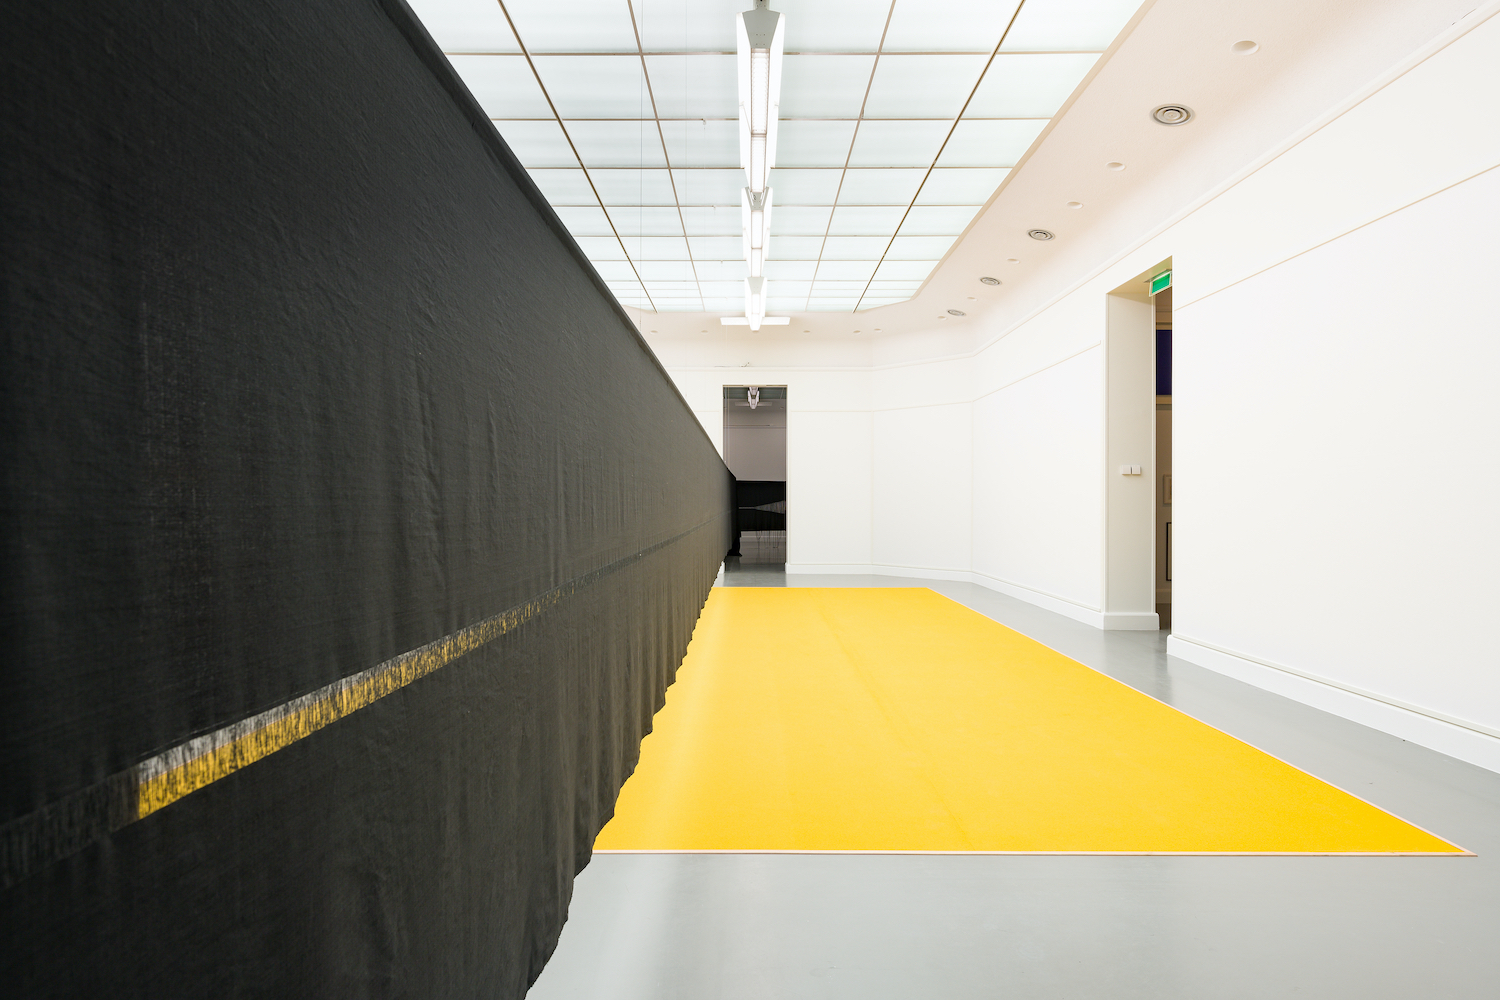 Vanishing Point, 2012, Yael Davids A Daily Practice, 2020, Van Abbemuseum. Foto Peter Cox